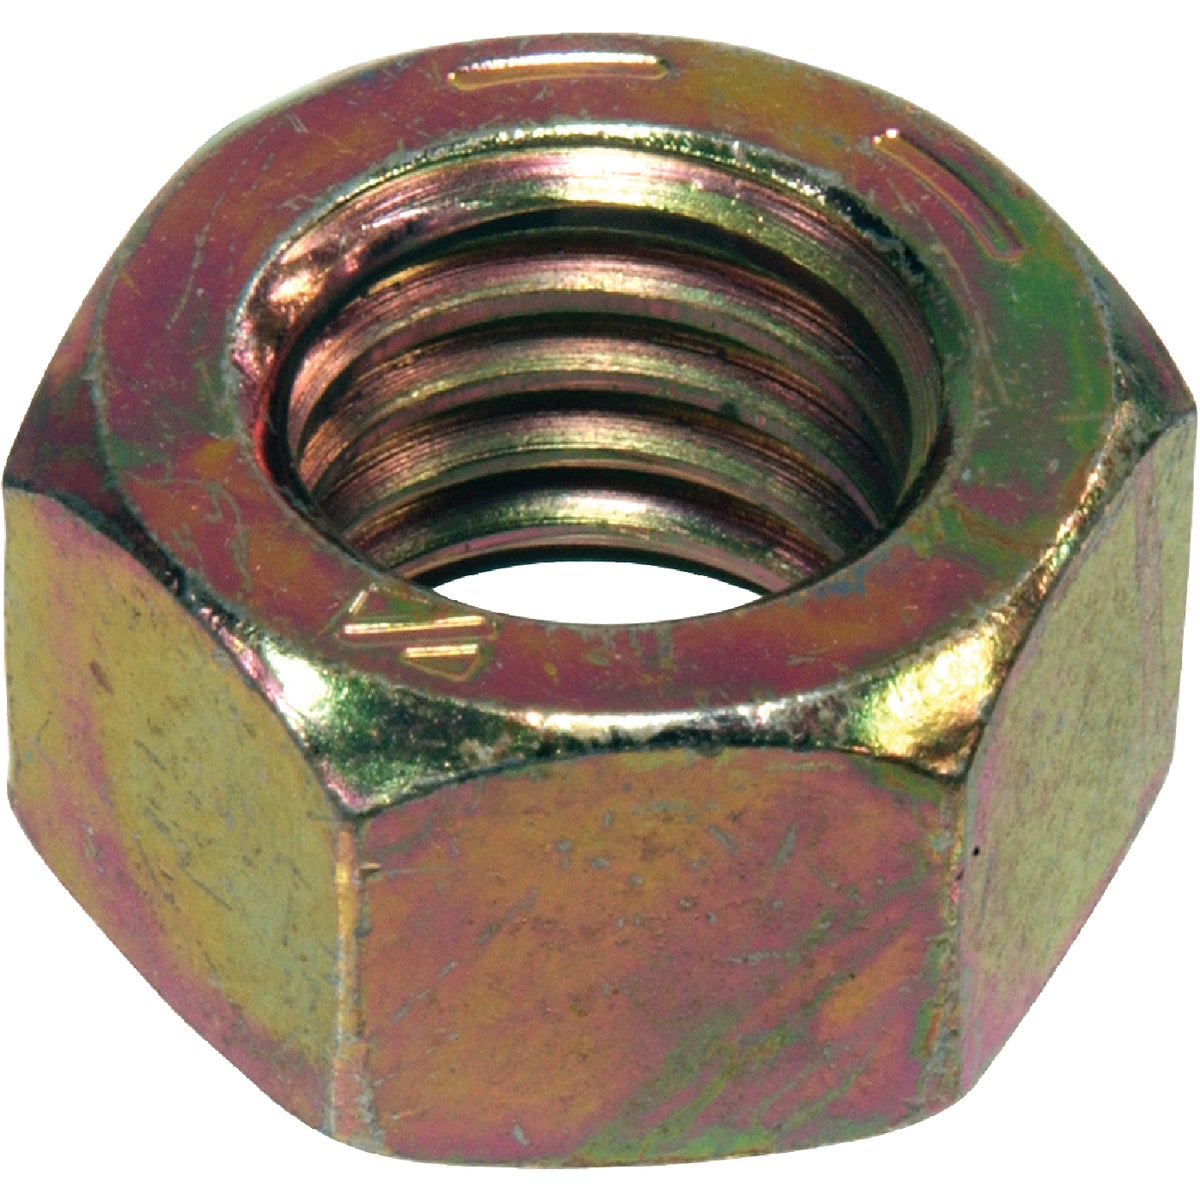 1/4-20 YC G8 HEX NUT - 180400 by Hillman Fastener